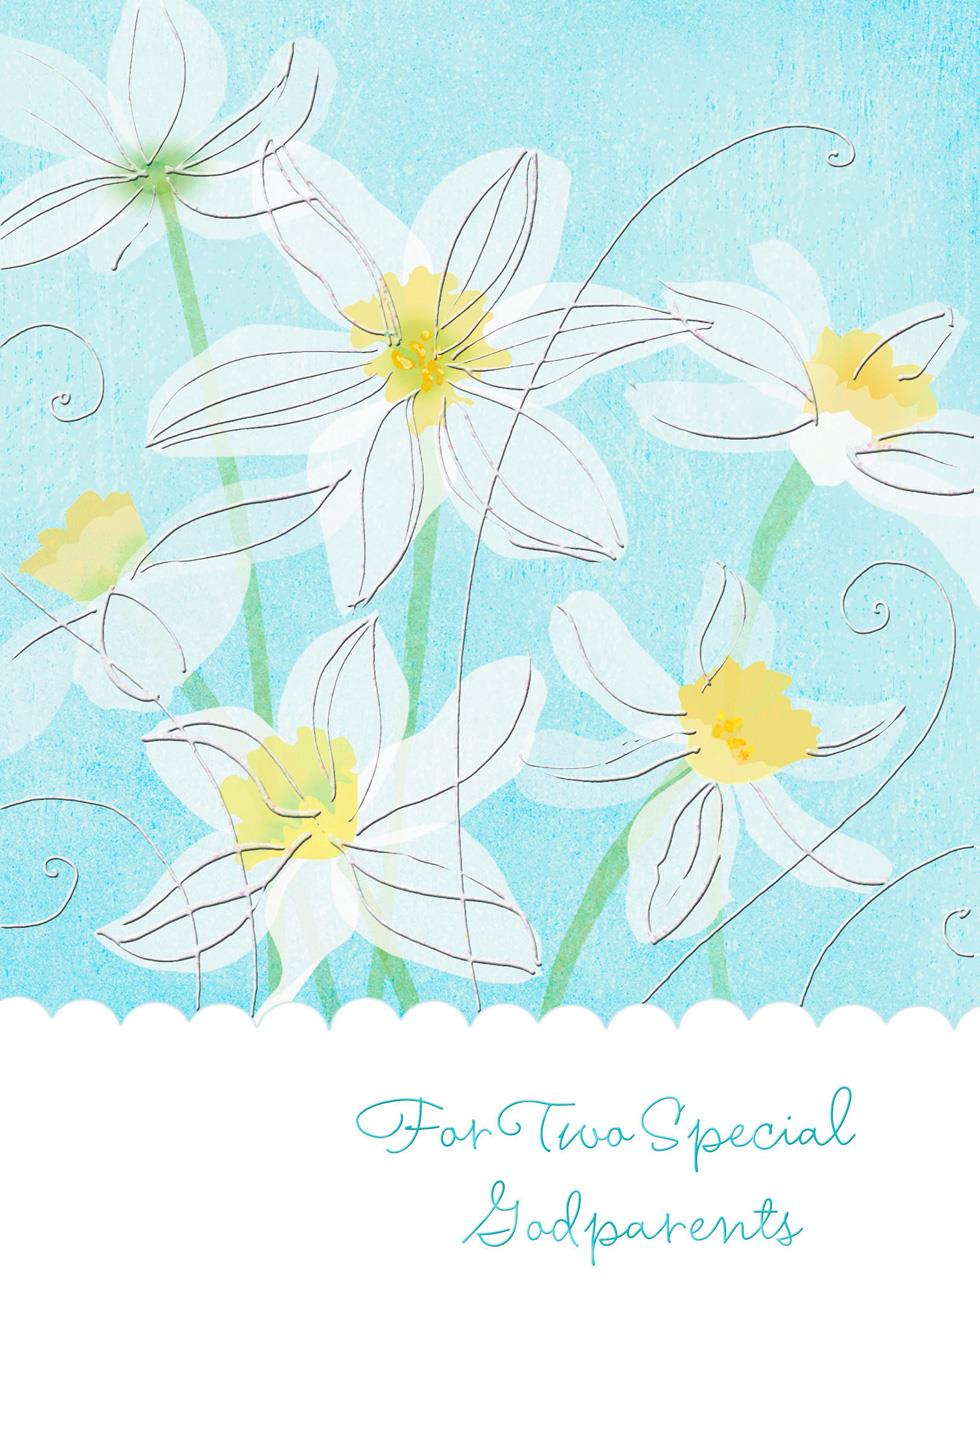 Heartfelt thanks easter card for godparents greeting cards hallmark heartfelt thanks easter card for godparents negle Image collections